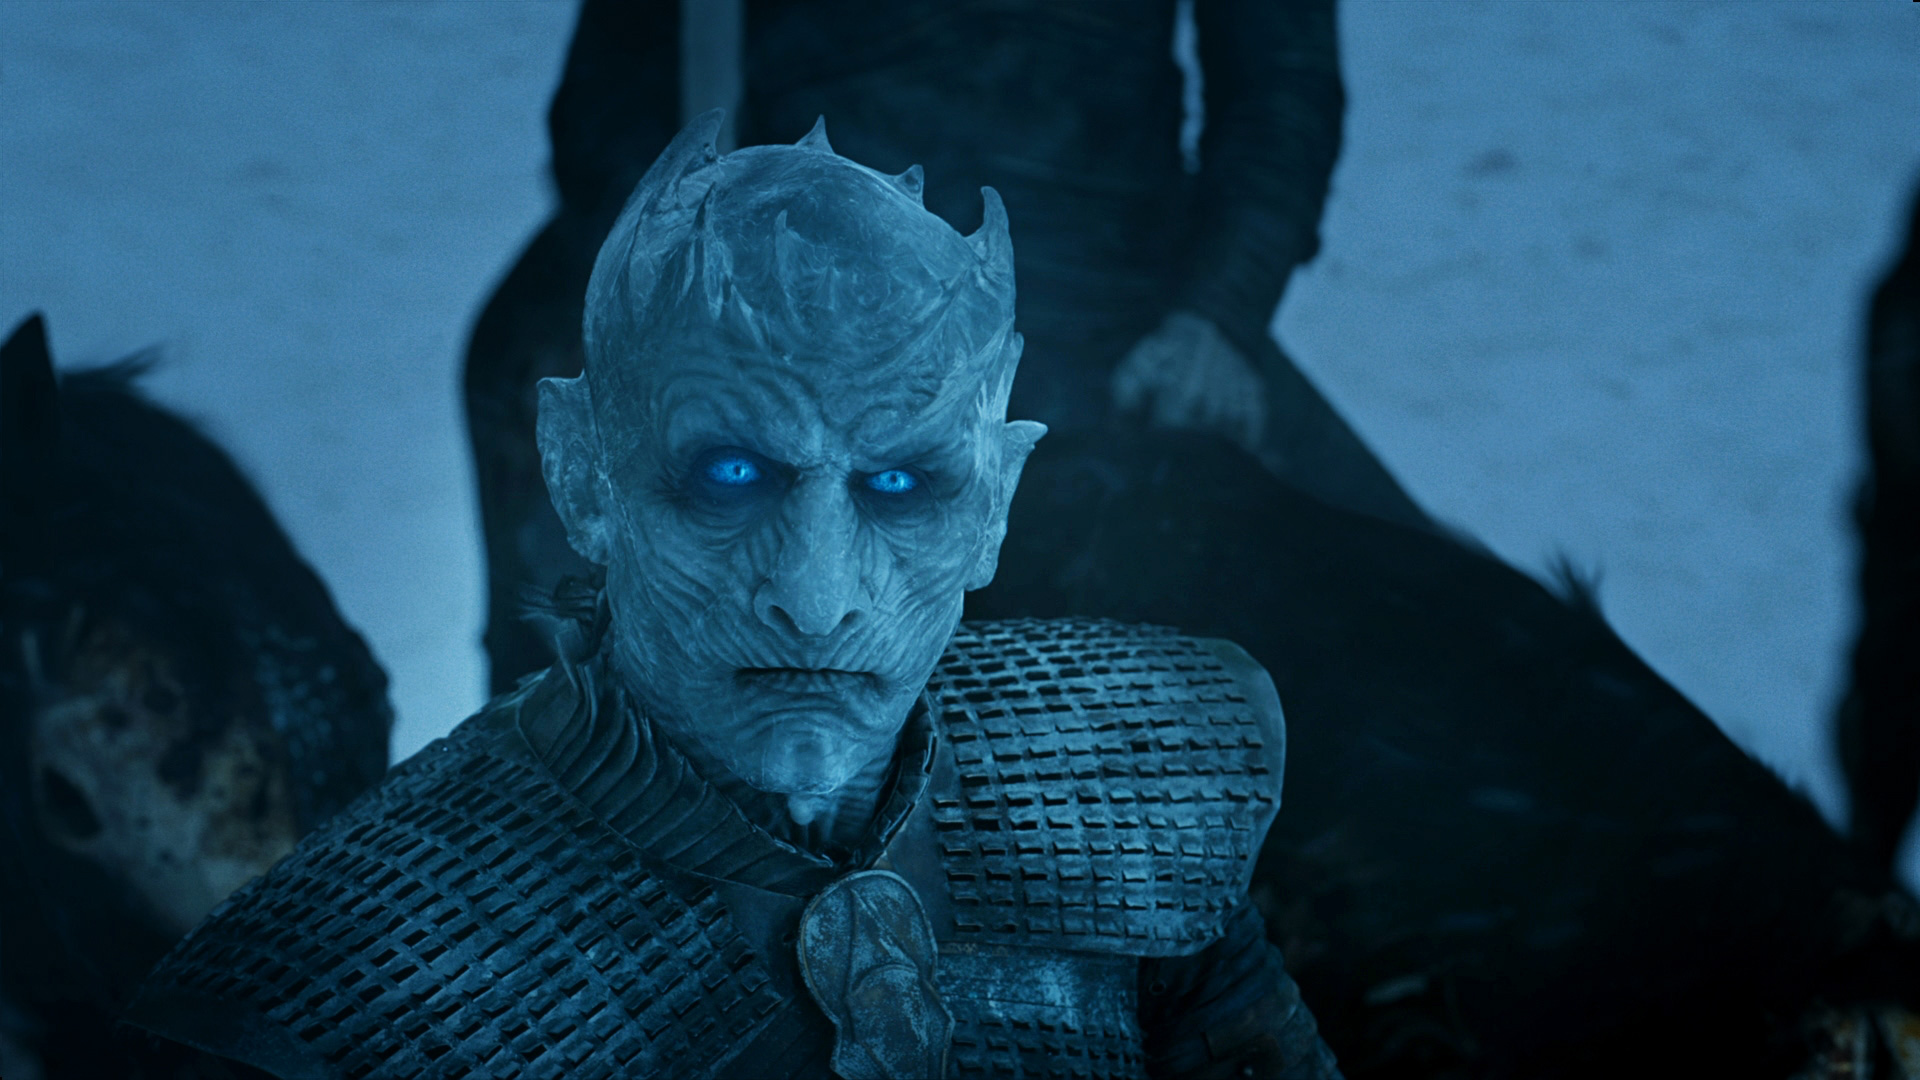 Game-of-Thrones-Nightking-Nachtkoenig-Fanartikel-Merchandise-Shop-Blog